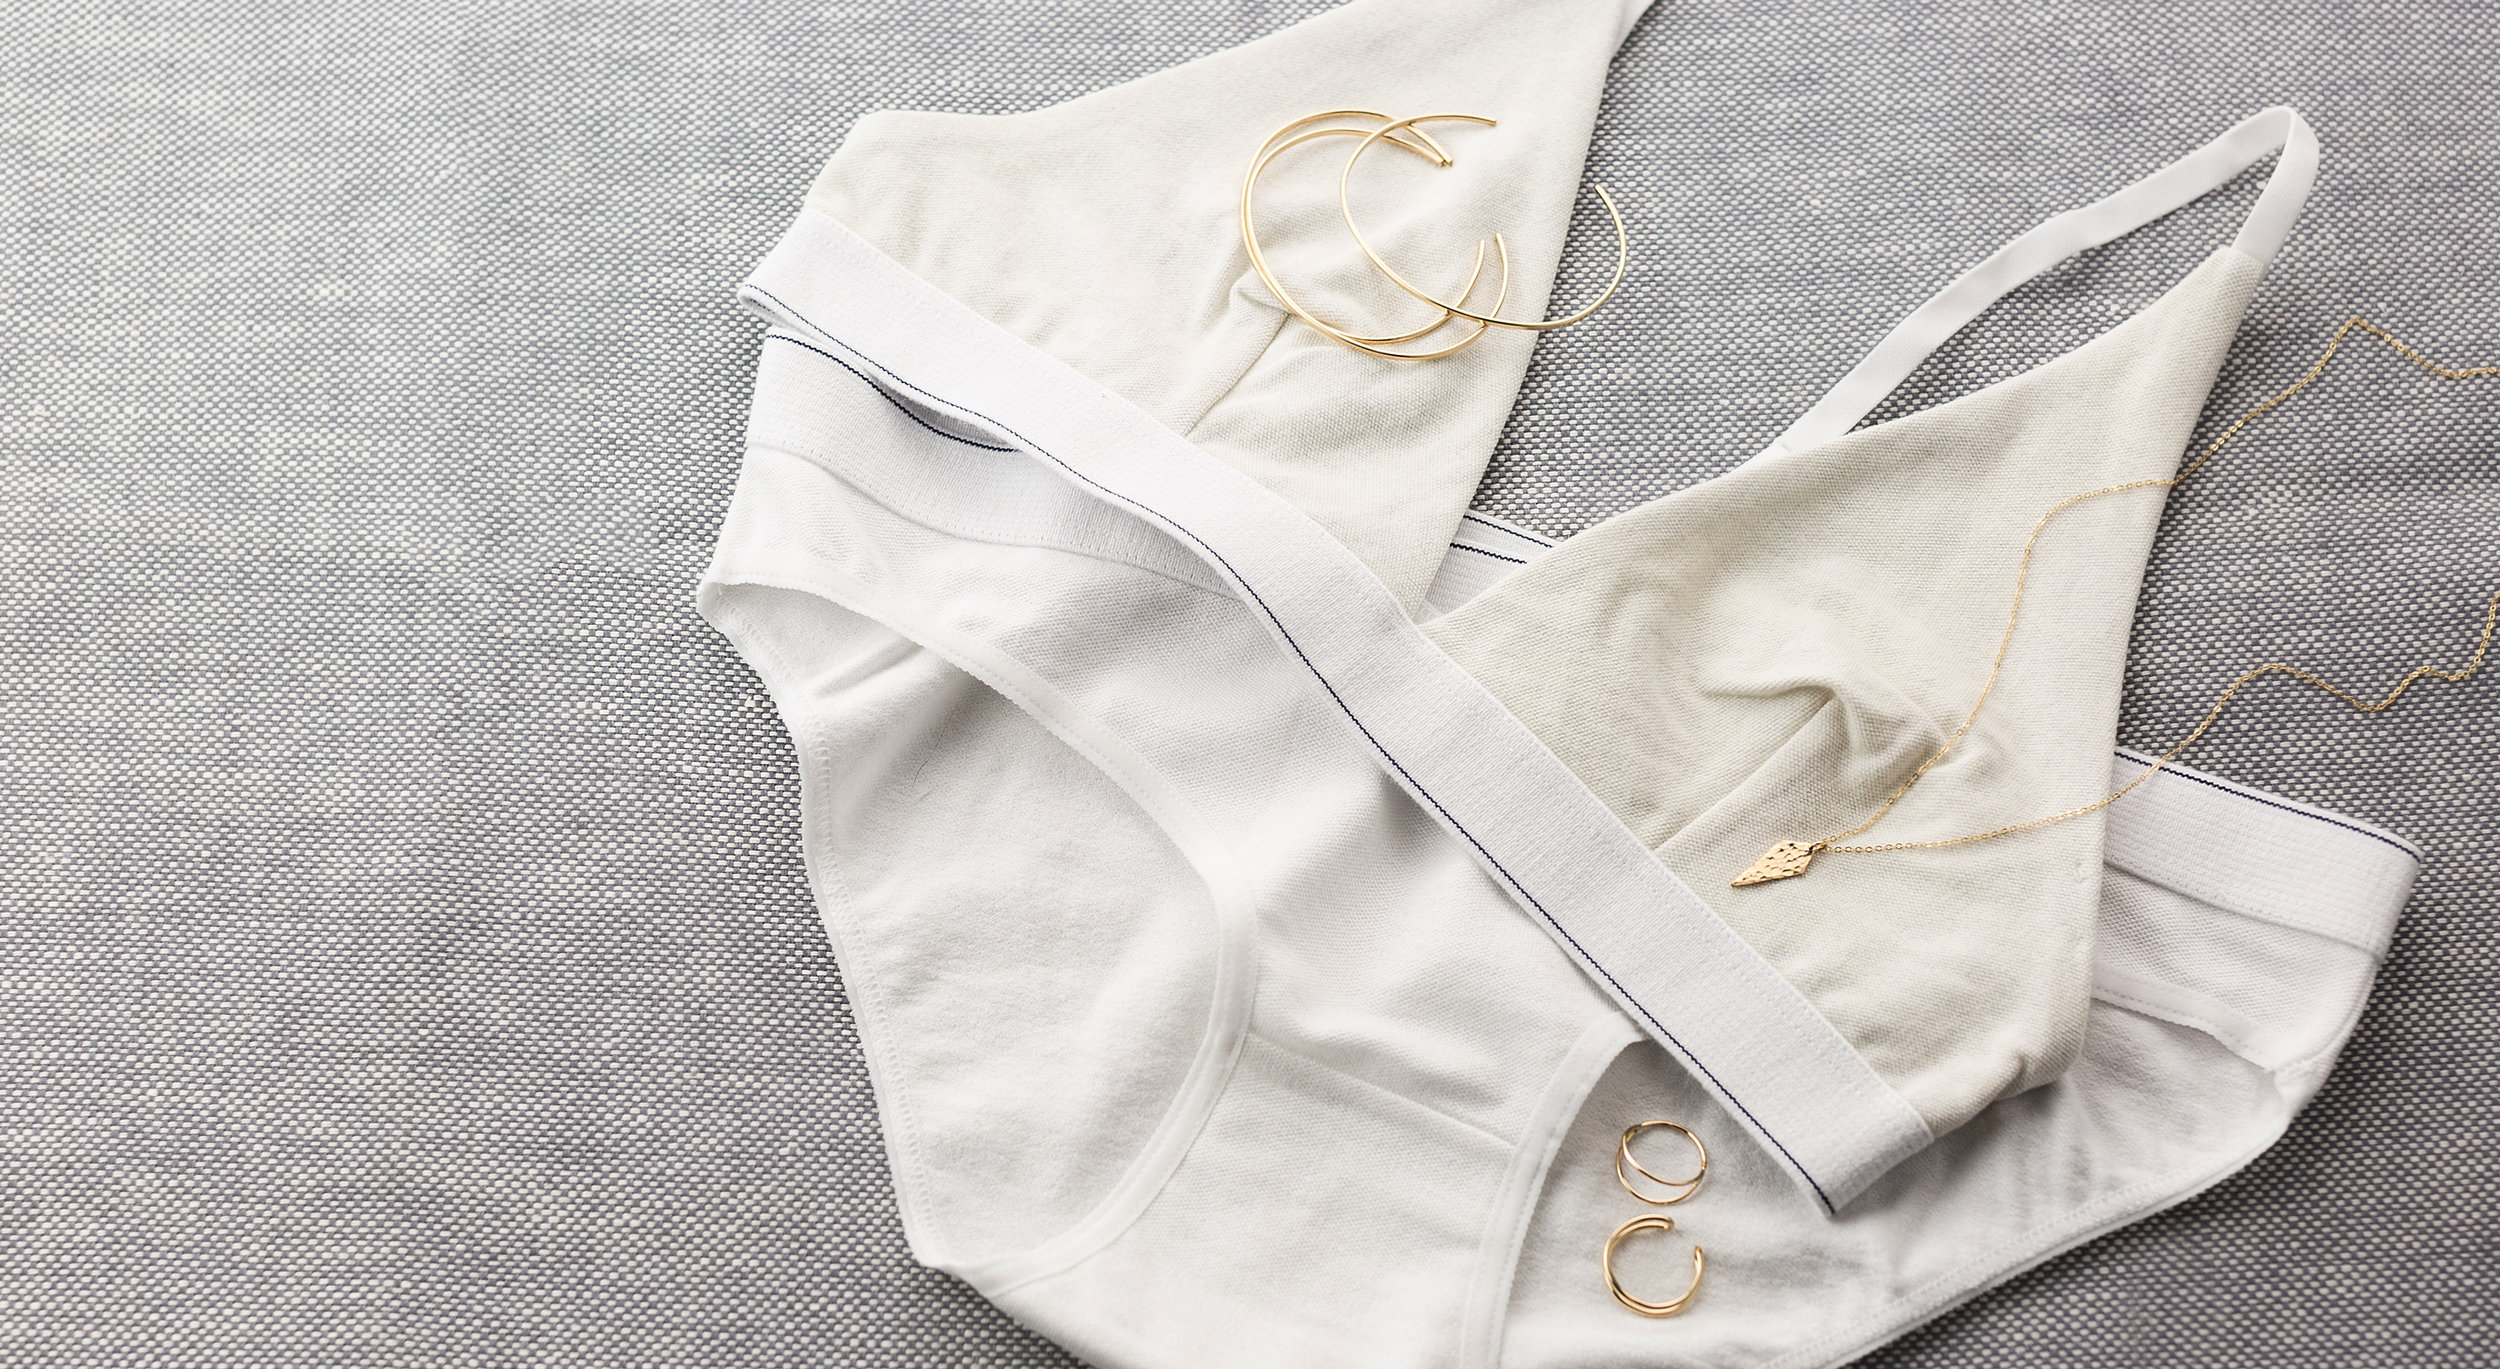 UNDIES:  Baserange .  GLDN JEWELRY:  Bruges  Ring,  Silo  Ring, Skinny Stacking Cuffs (coming soon),  Myra  Necklace